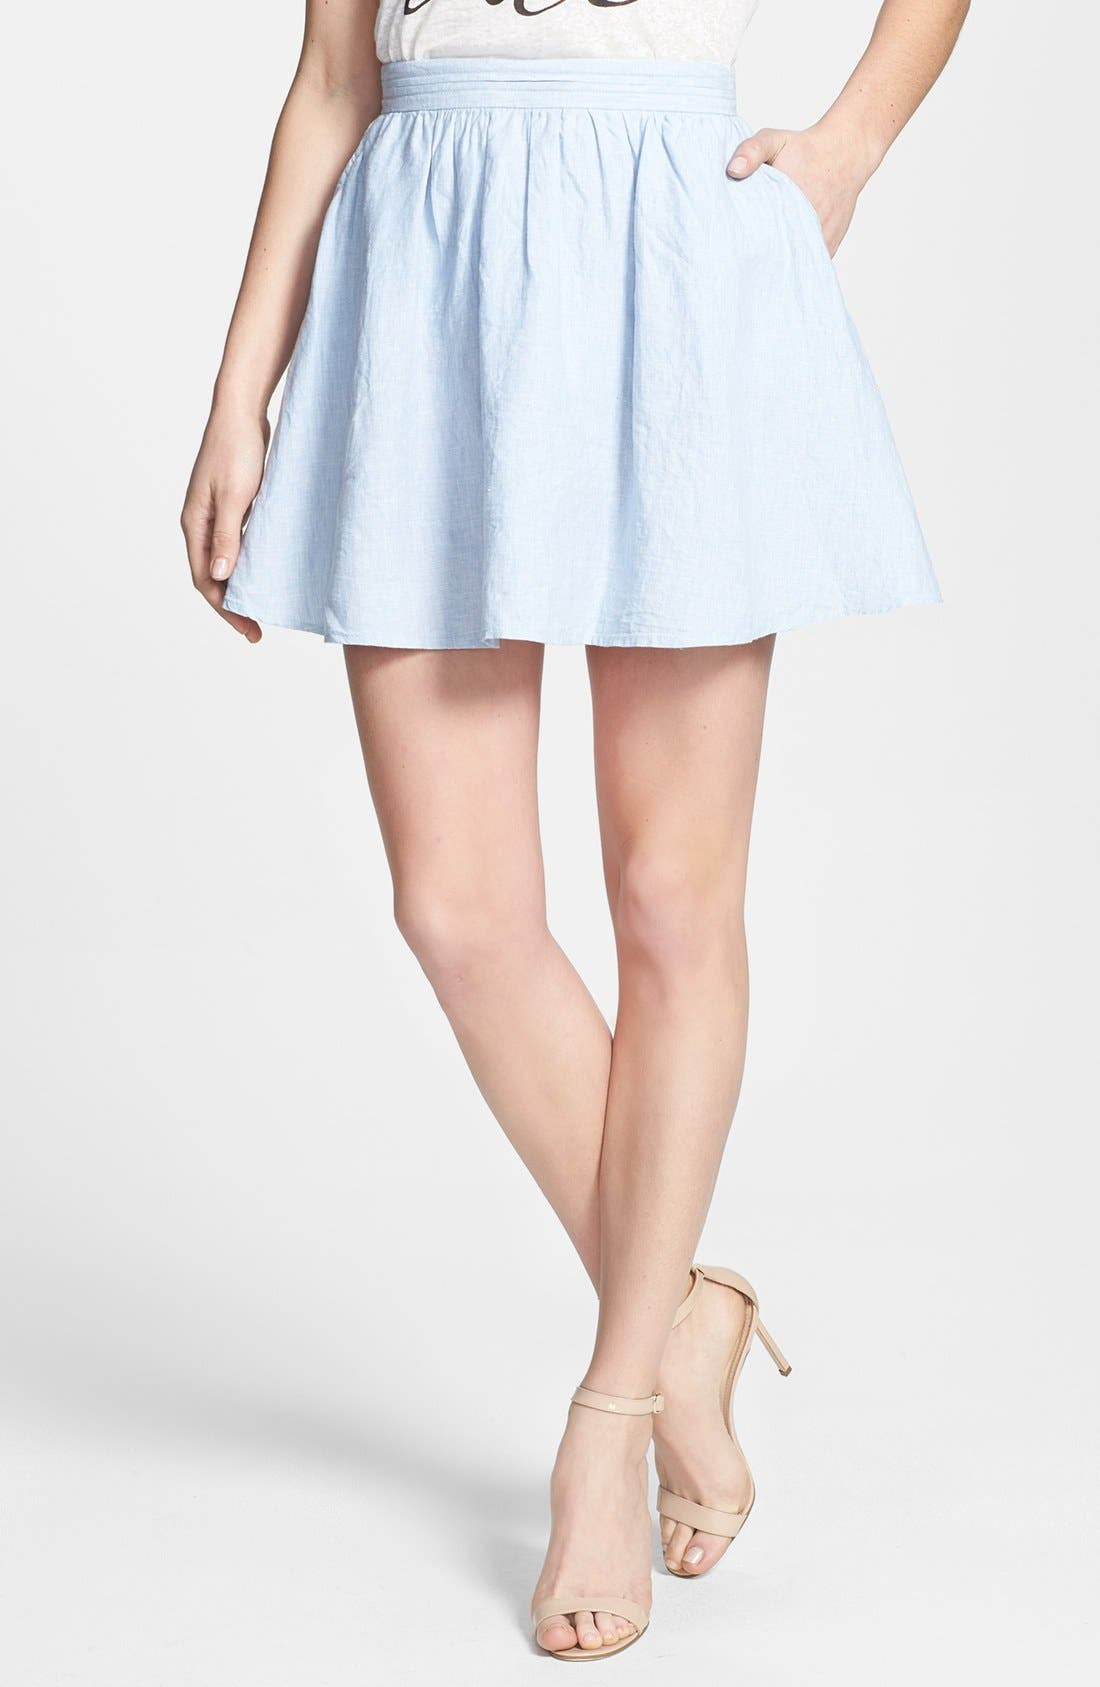 Alternate Image 1 Selected - Joie 'Kaylea' Flare Linen Skirt